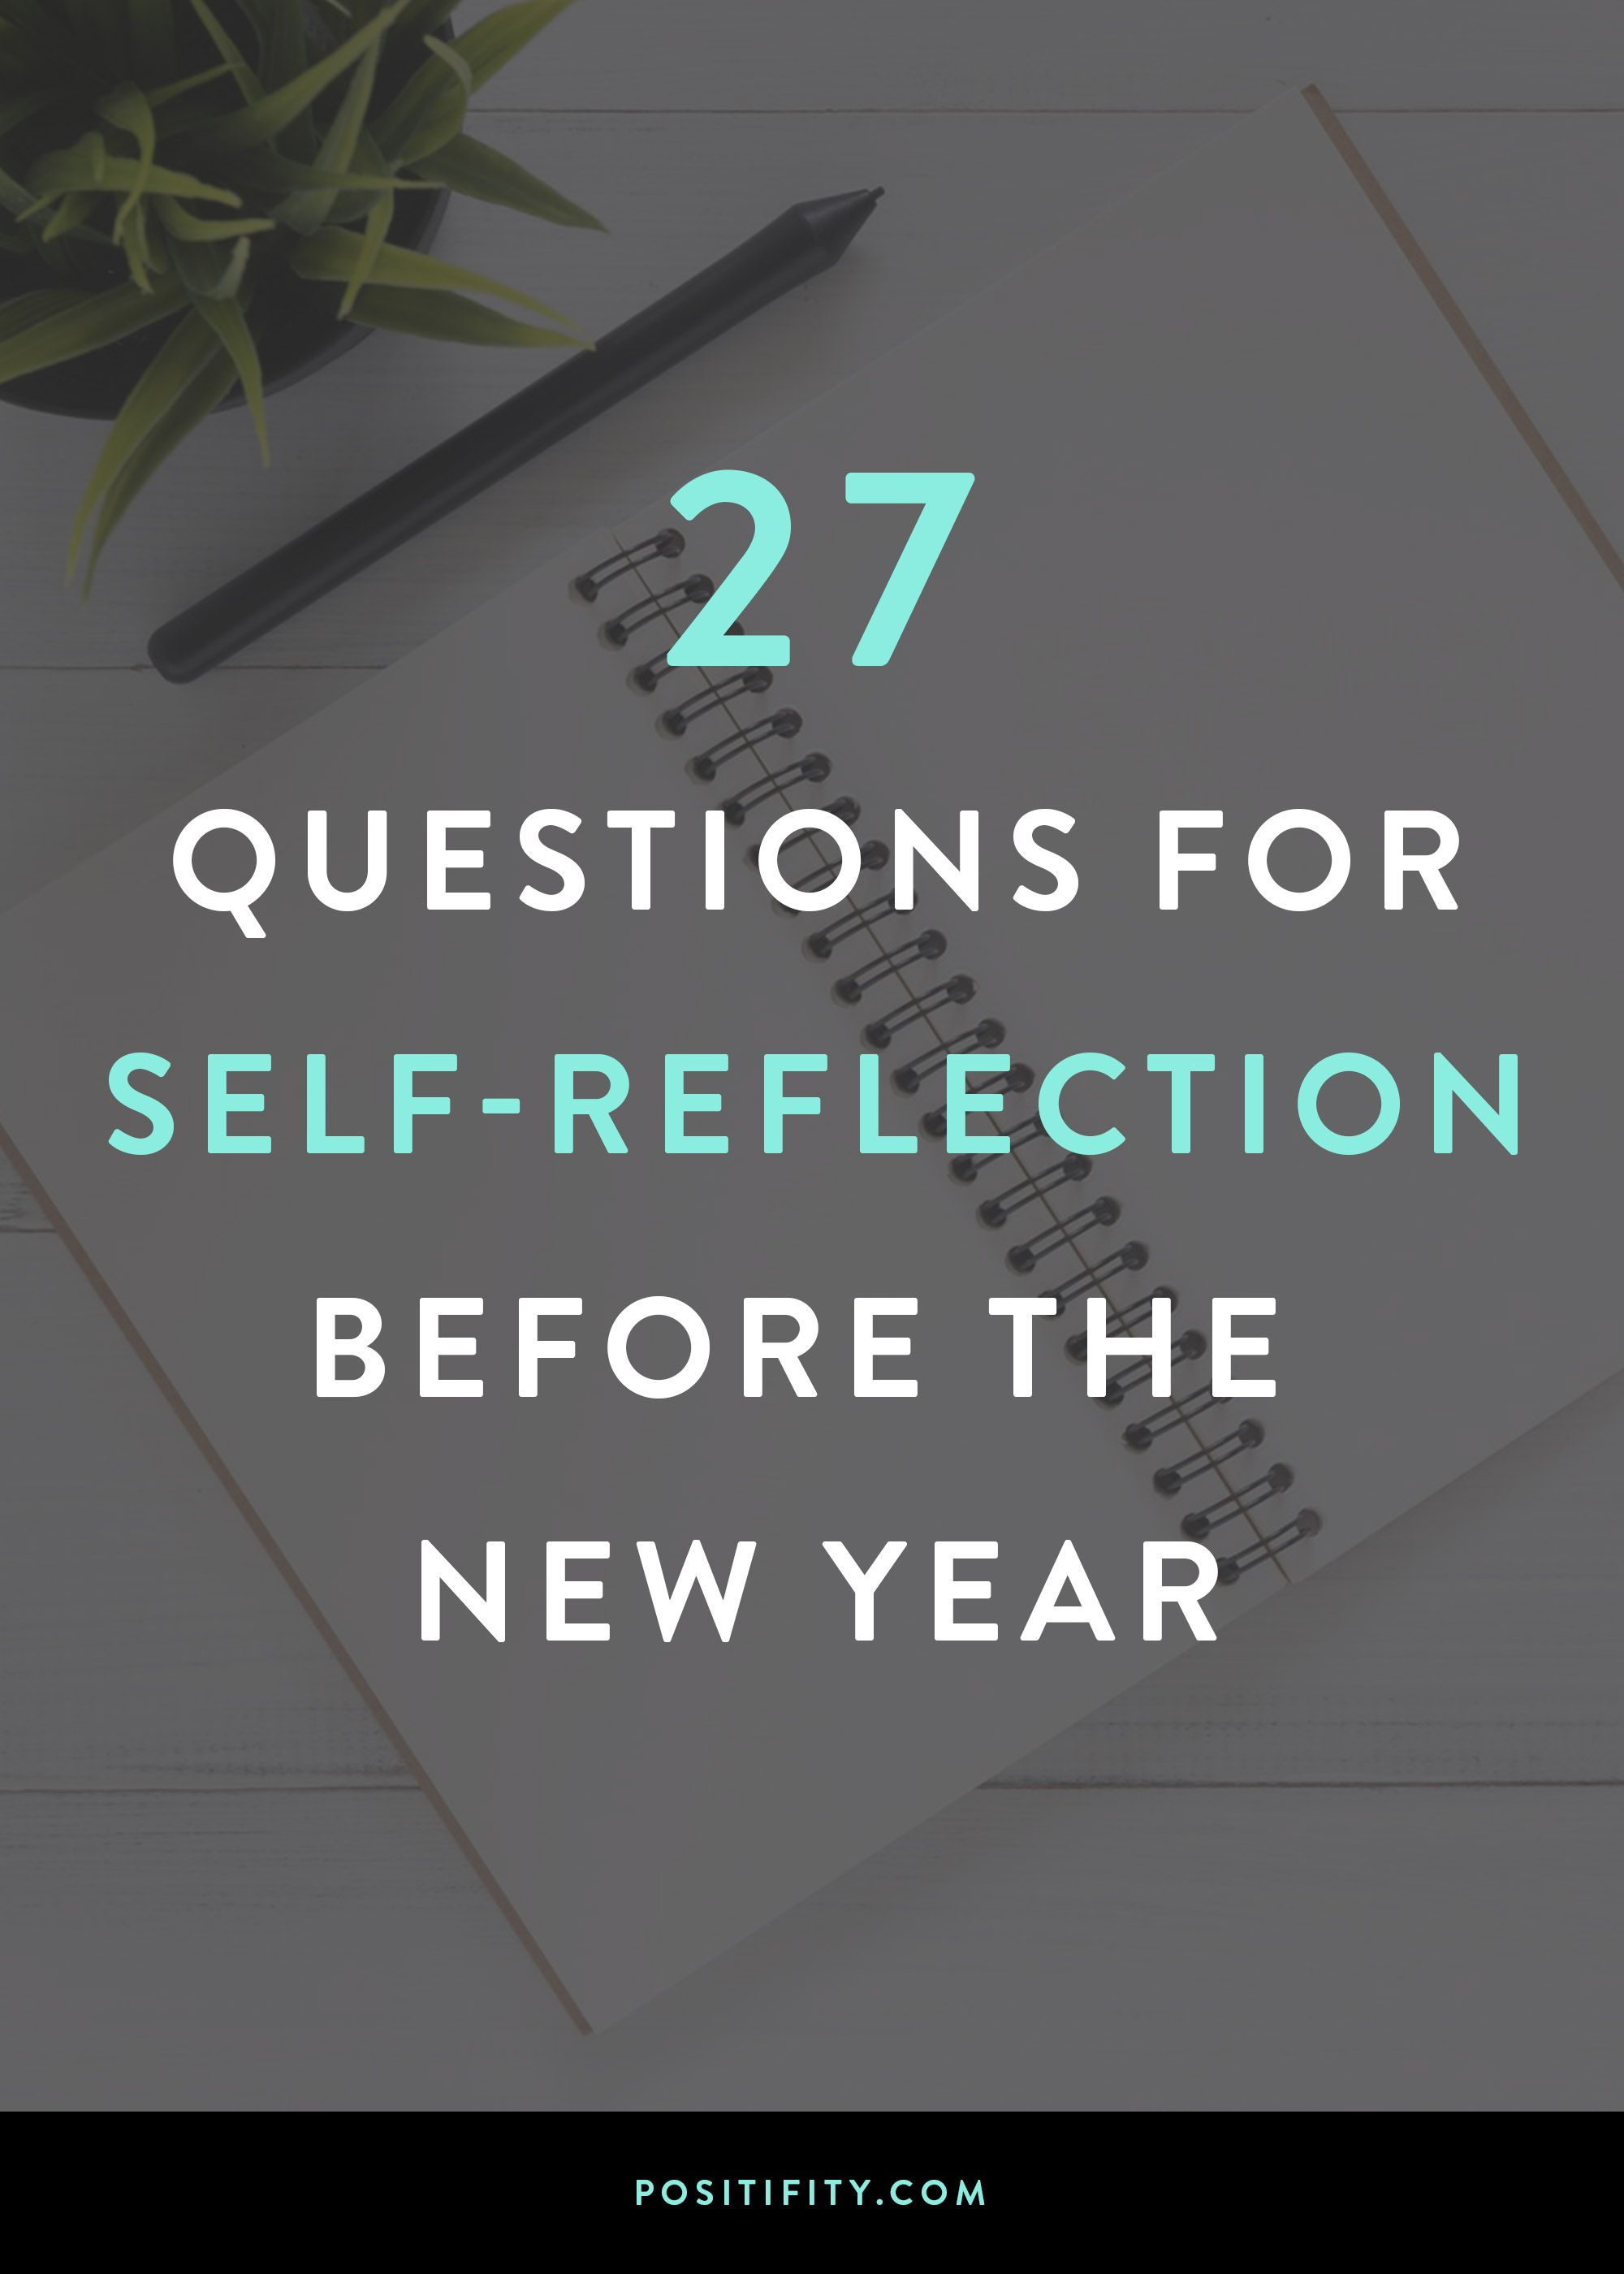 27 Questions for SelfReflection Before the New Year